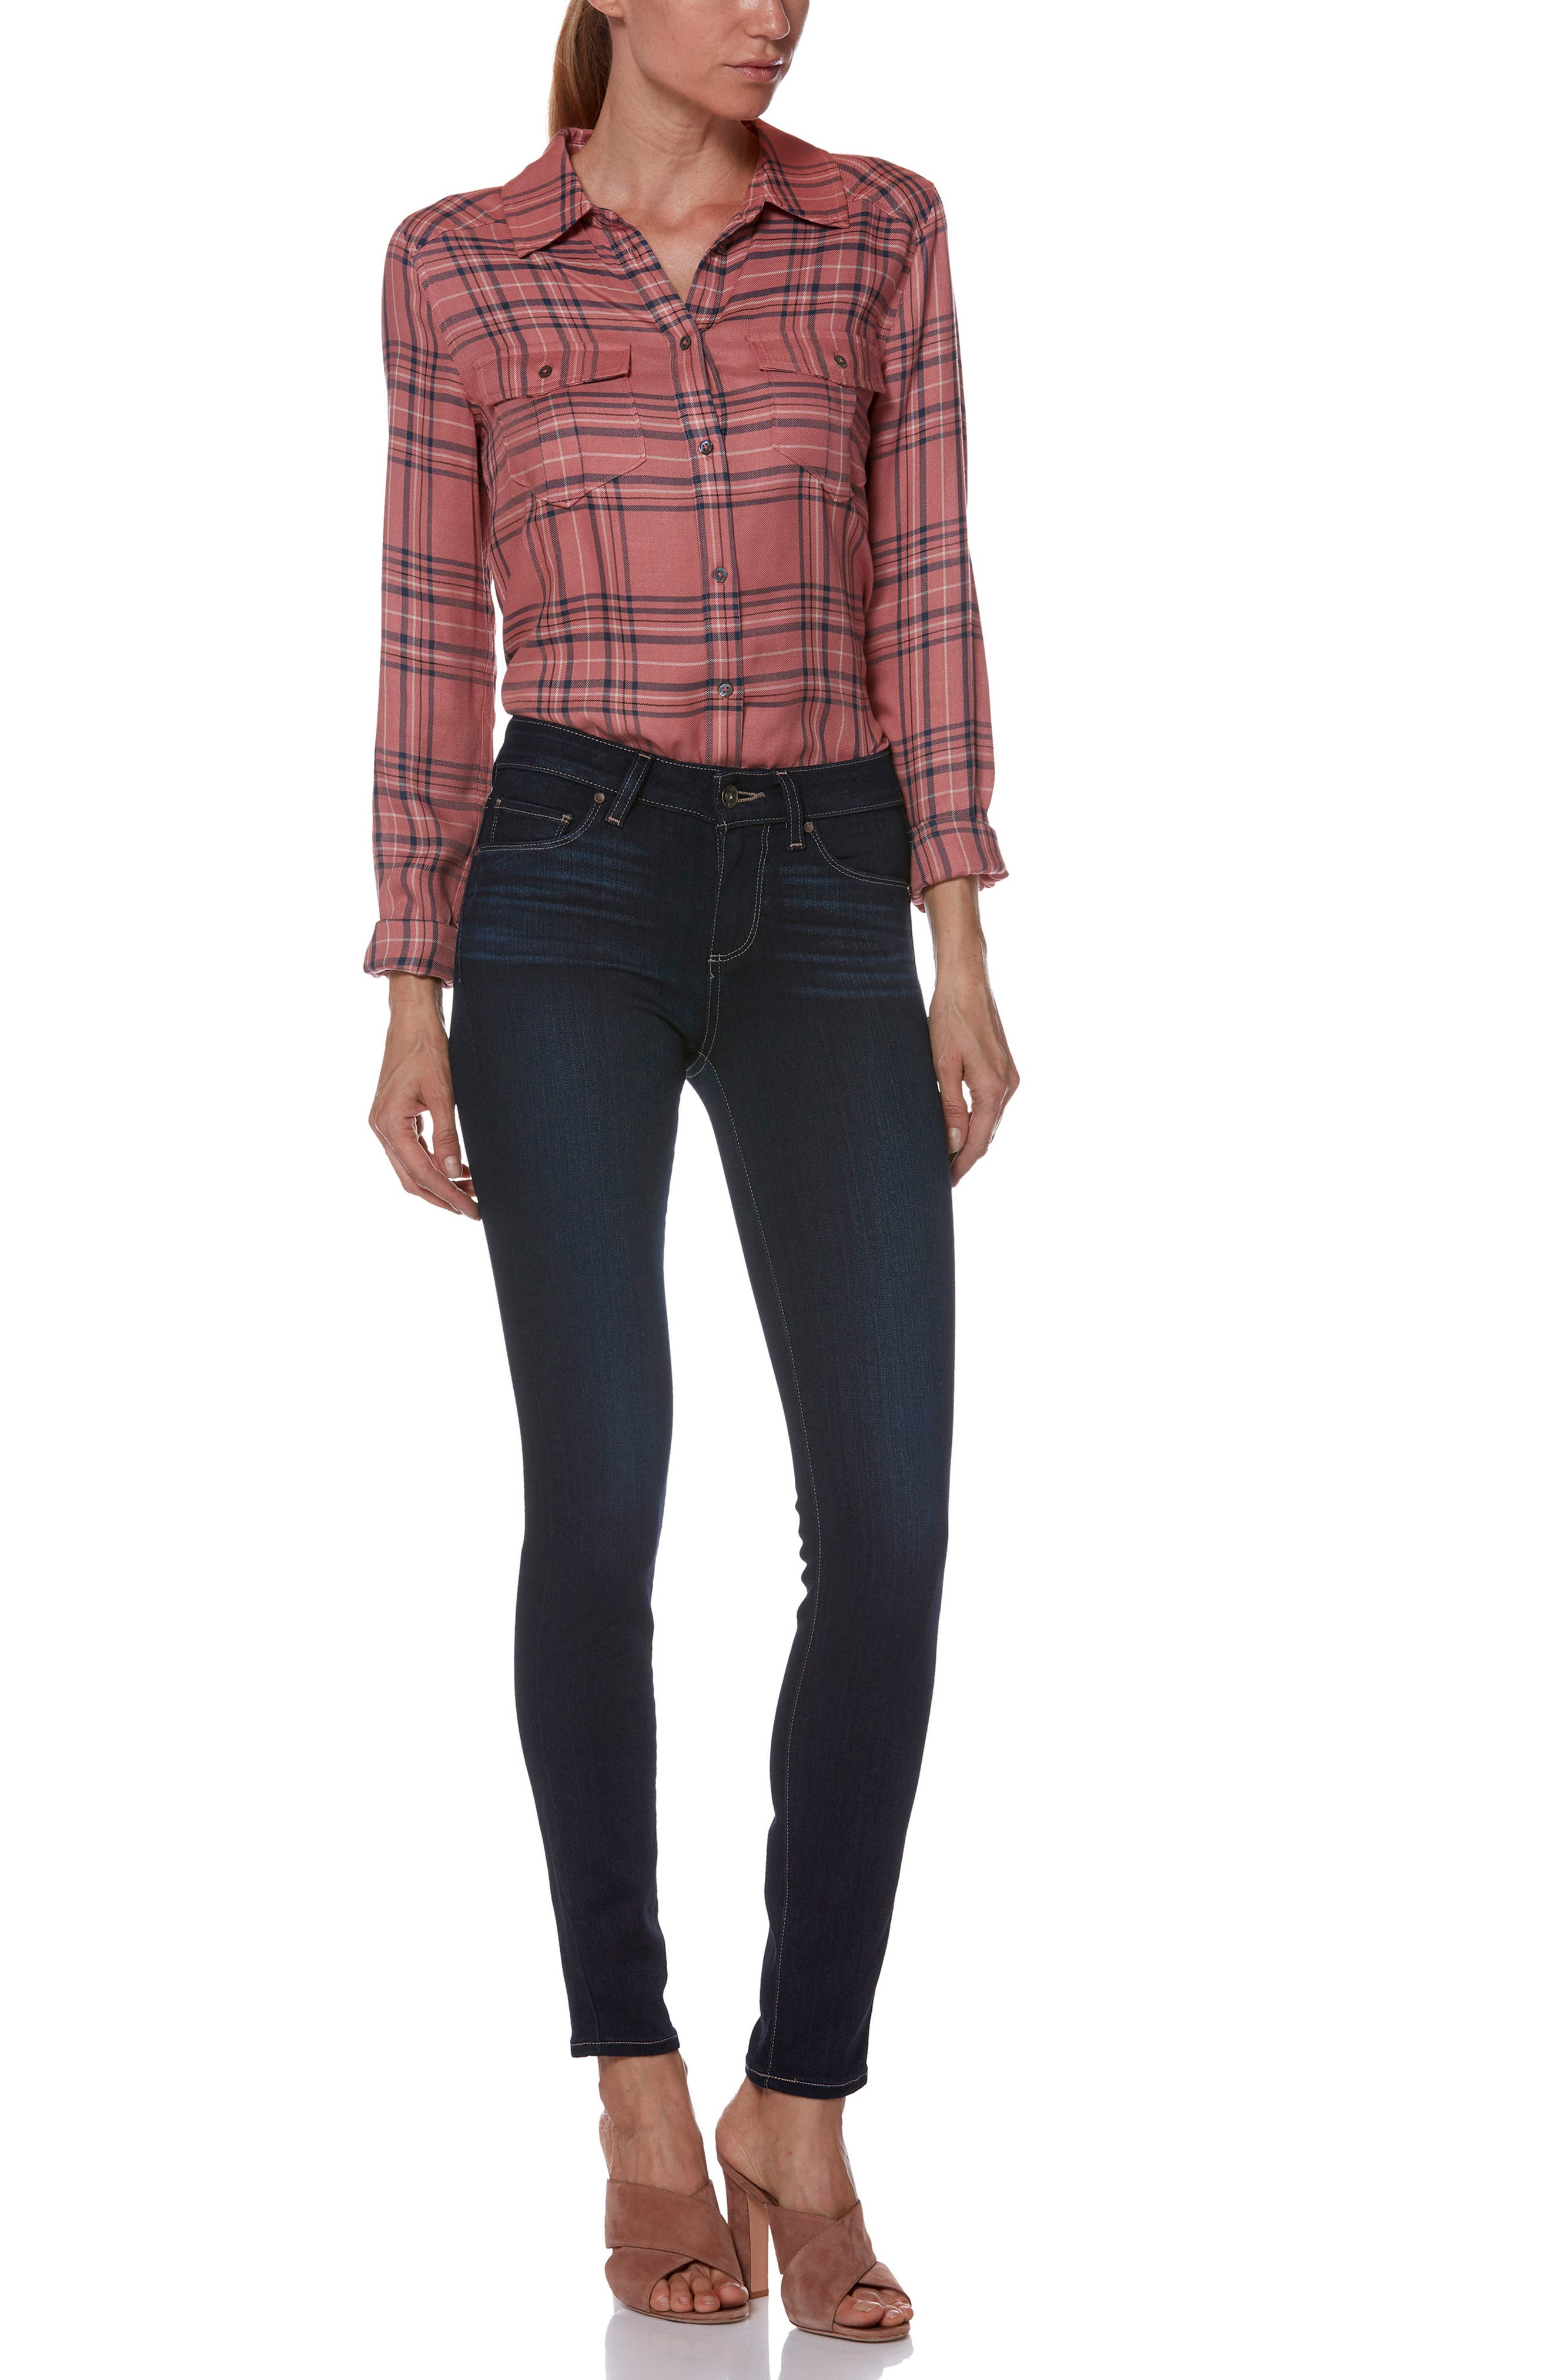 PAIGE,                             Transcend - Verdugo Ultra Skinny Jeans,                             Alternate thumbnail 7, color,                             ACADIA